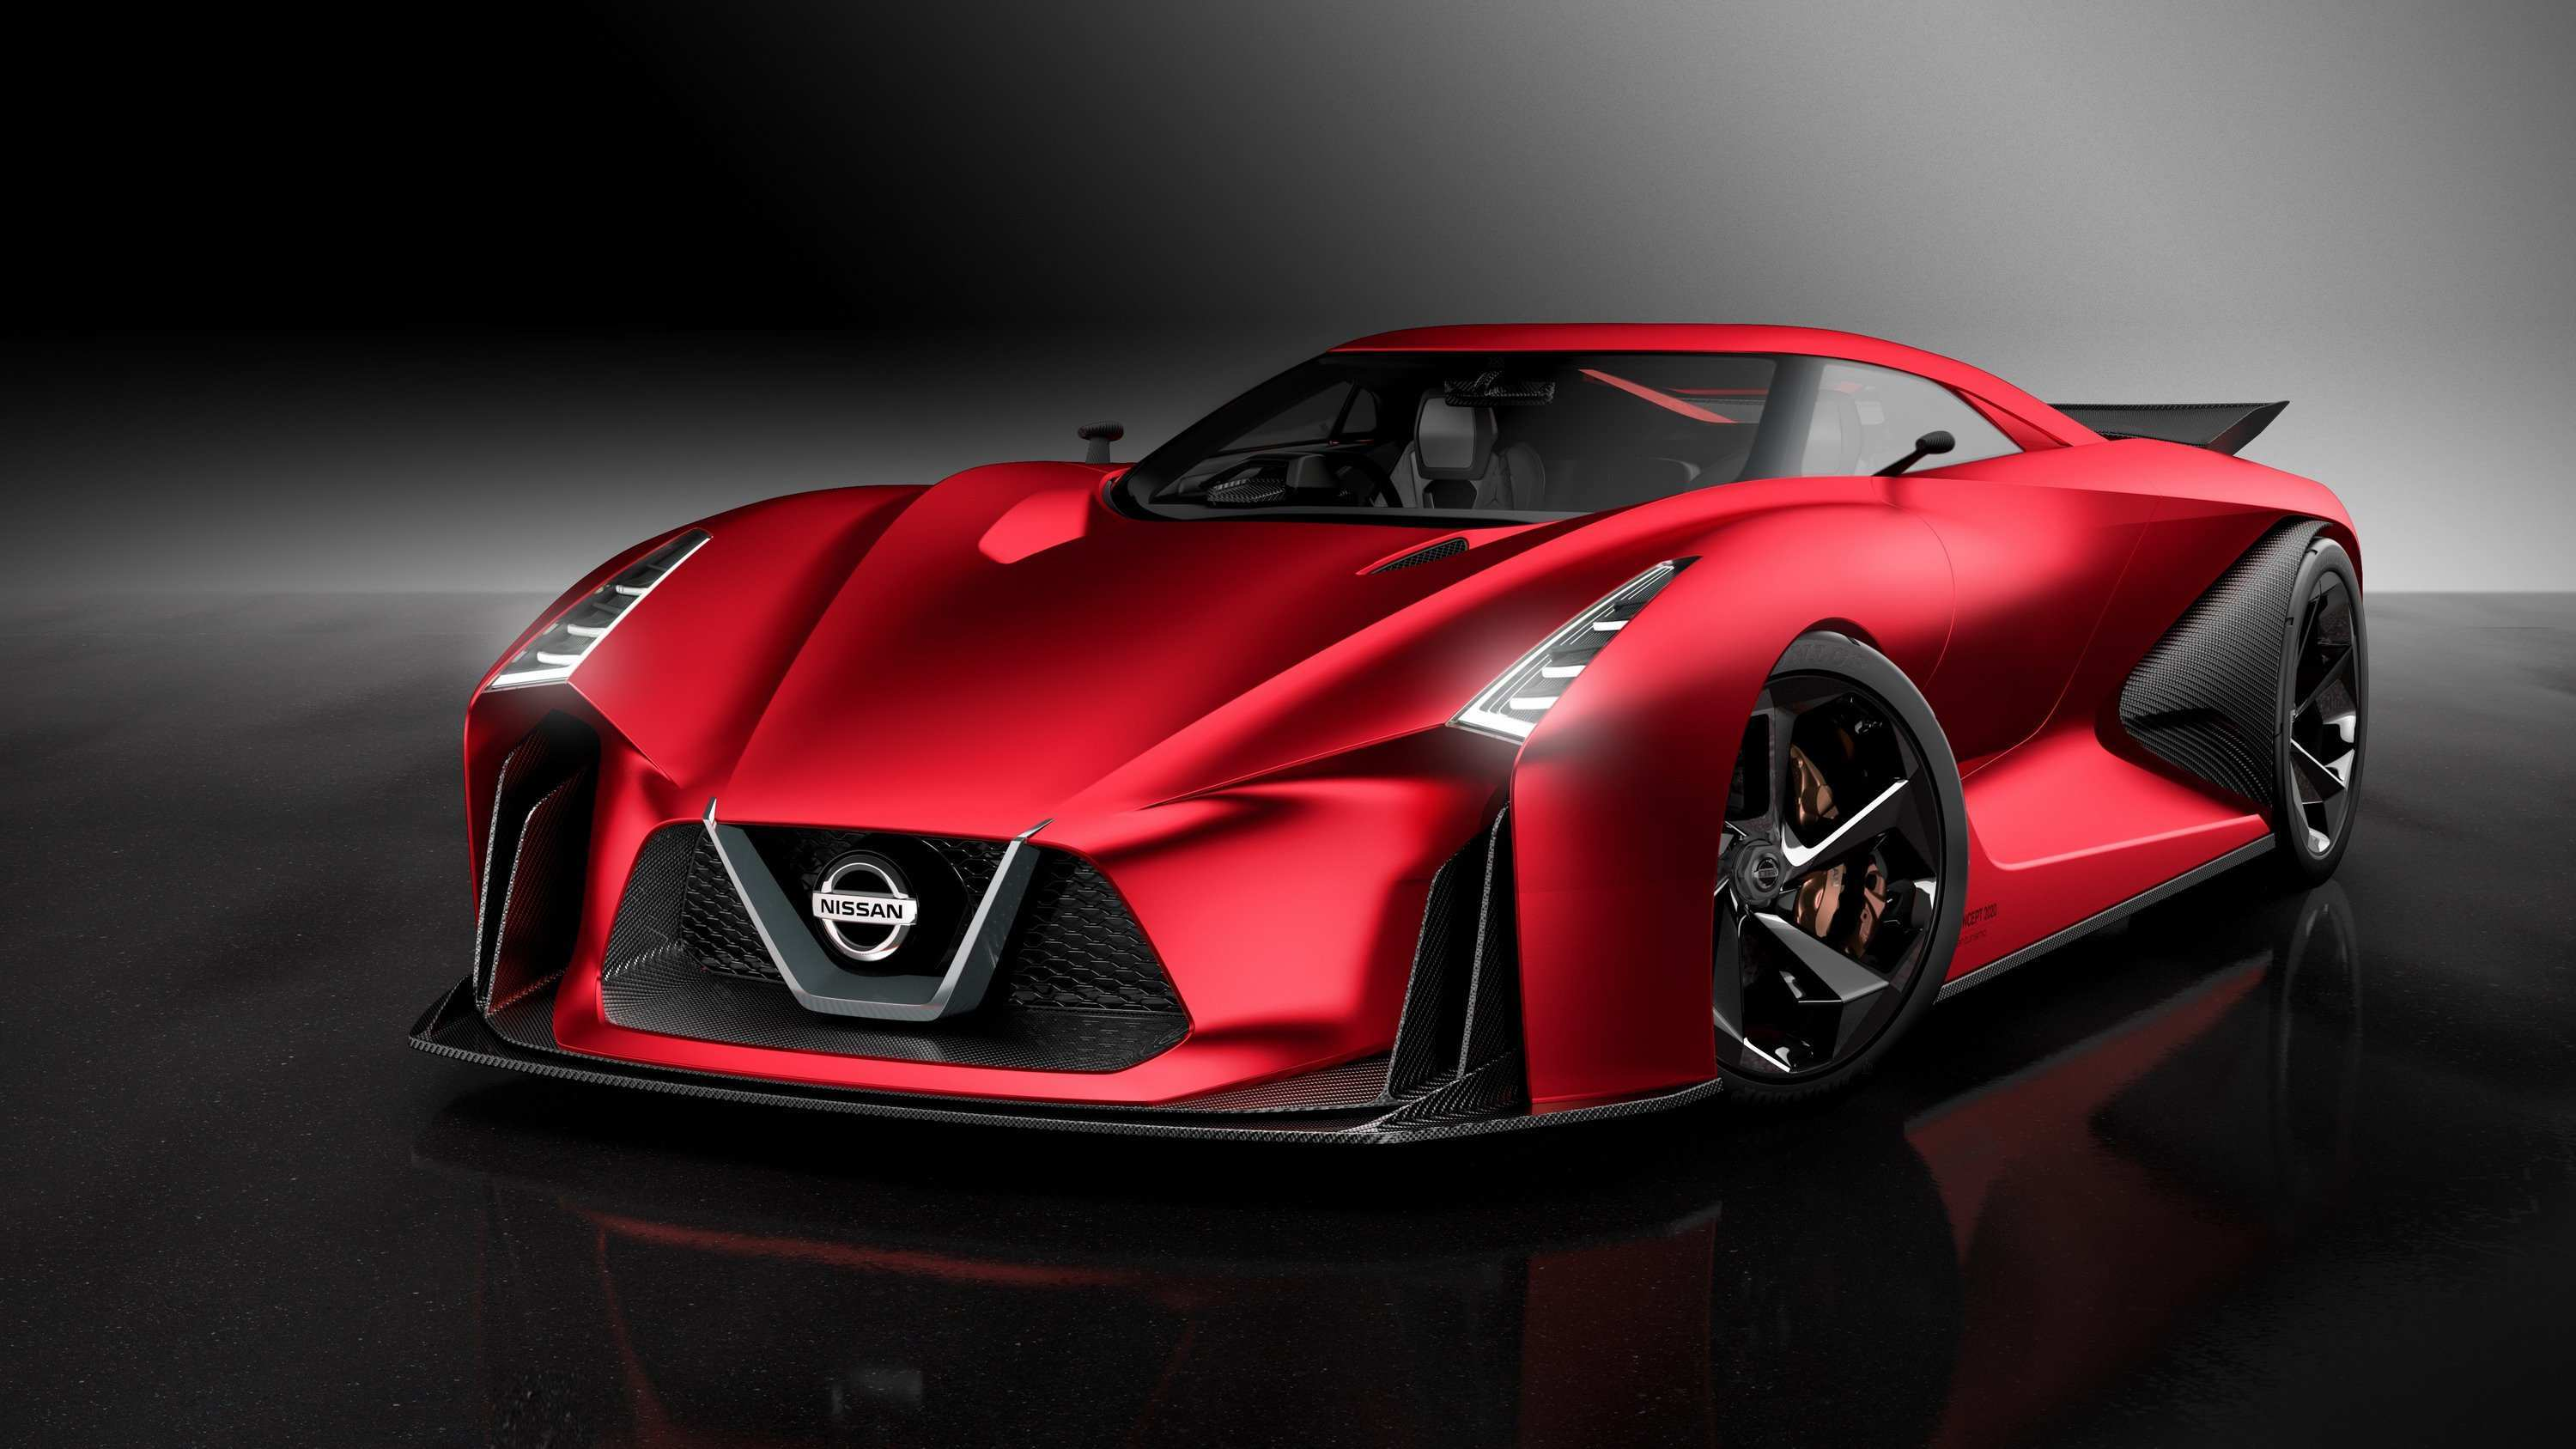 26 New 2020 Nissan GT R History for 2020 Nissan GT R